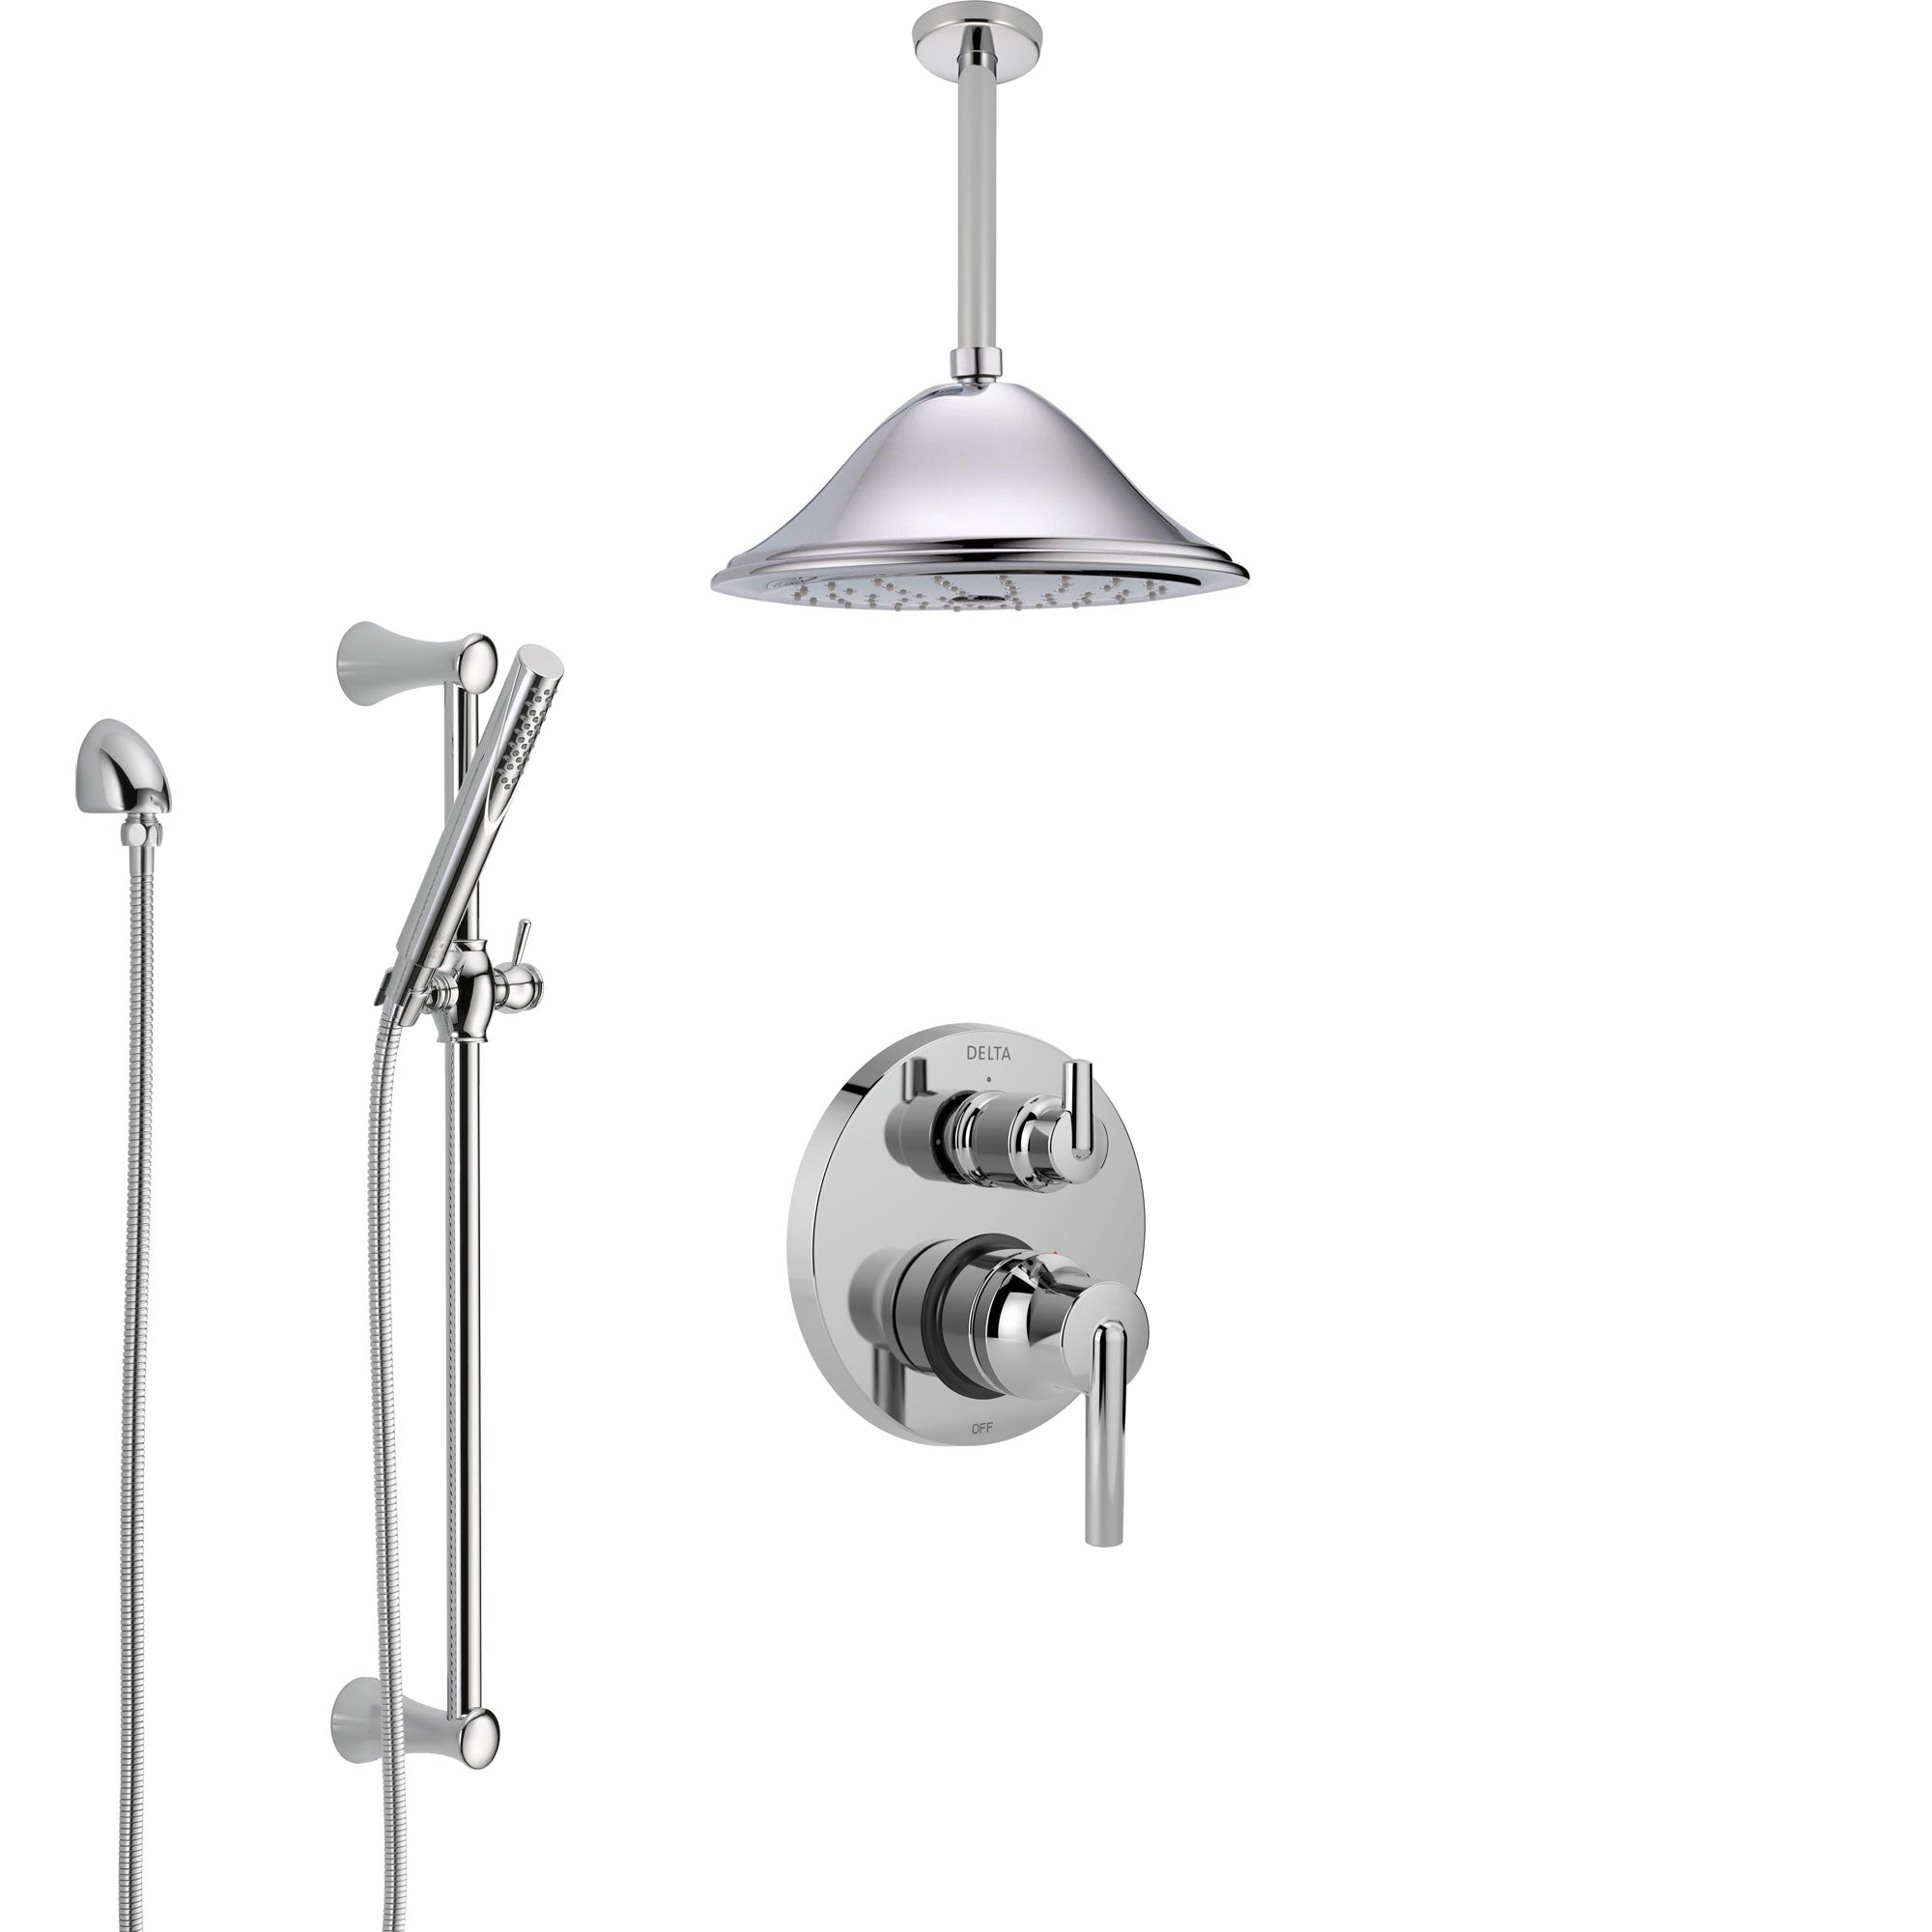 Delta Trinsic Chrome Finish Shower System with Control Handle, Integrated Diverter, Ceiling Mount Showerhead, and Hand Shower with Slidebar SS248592